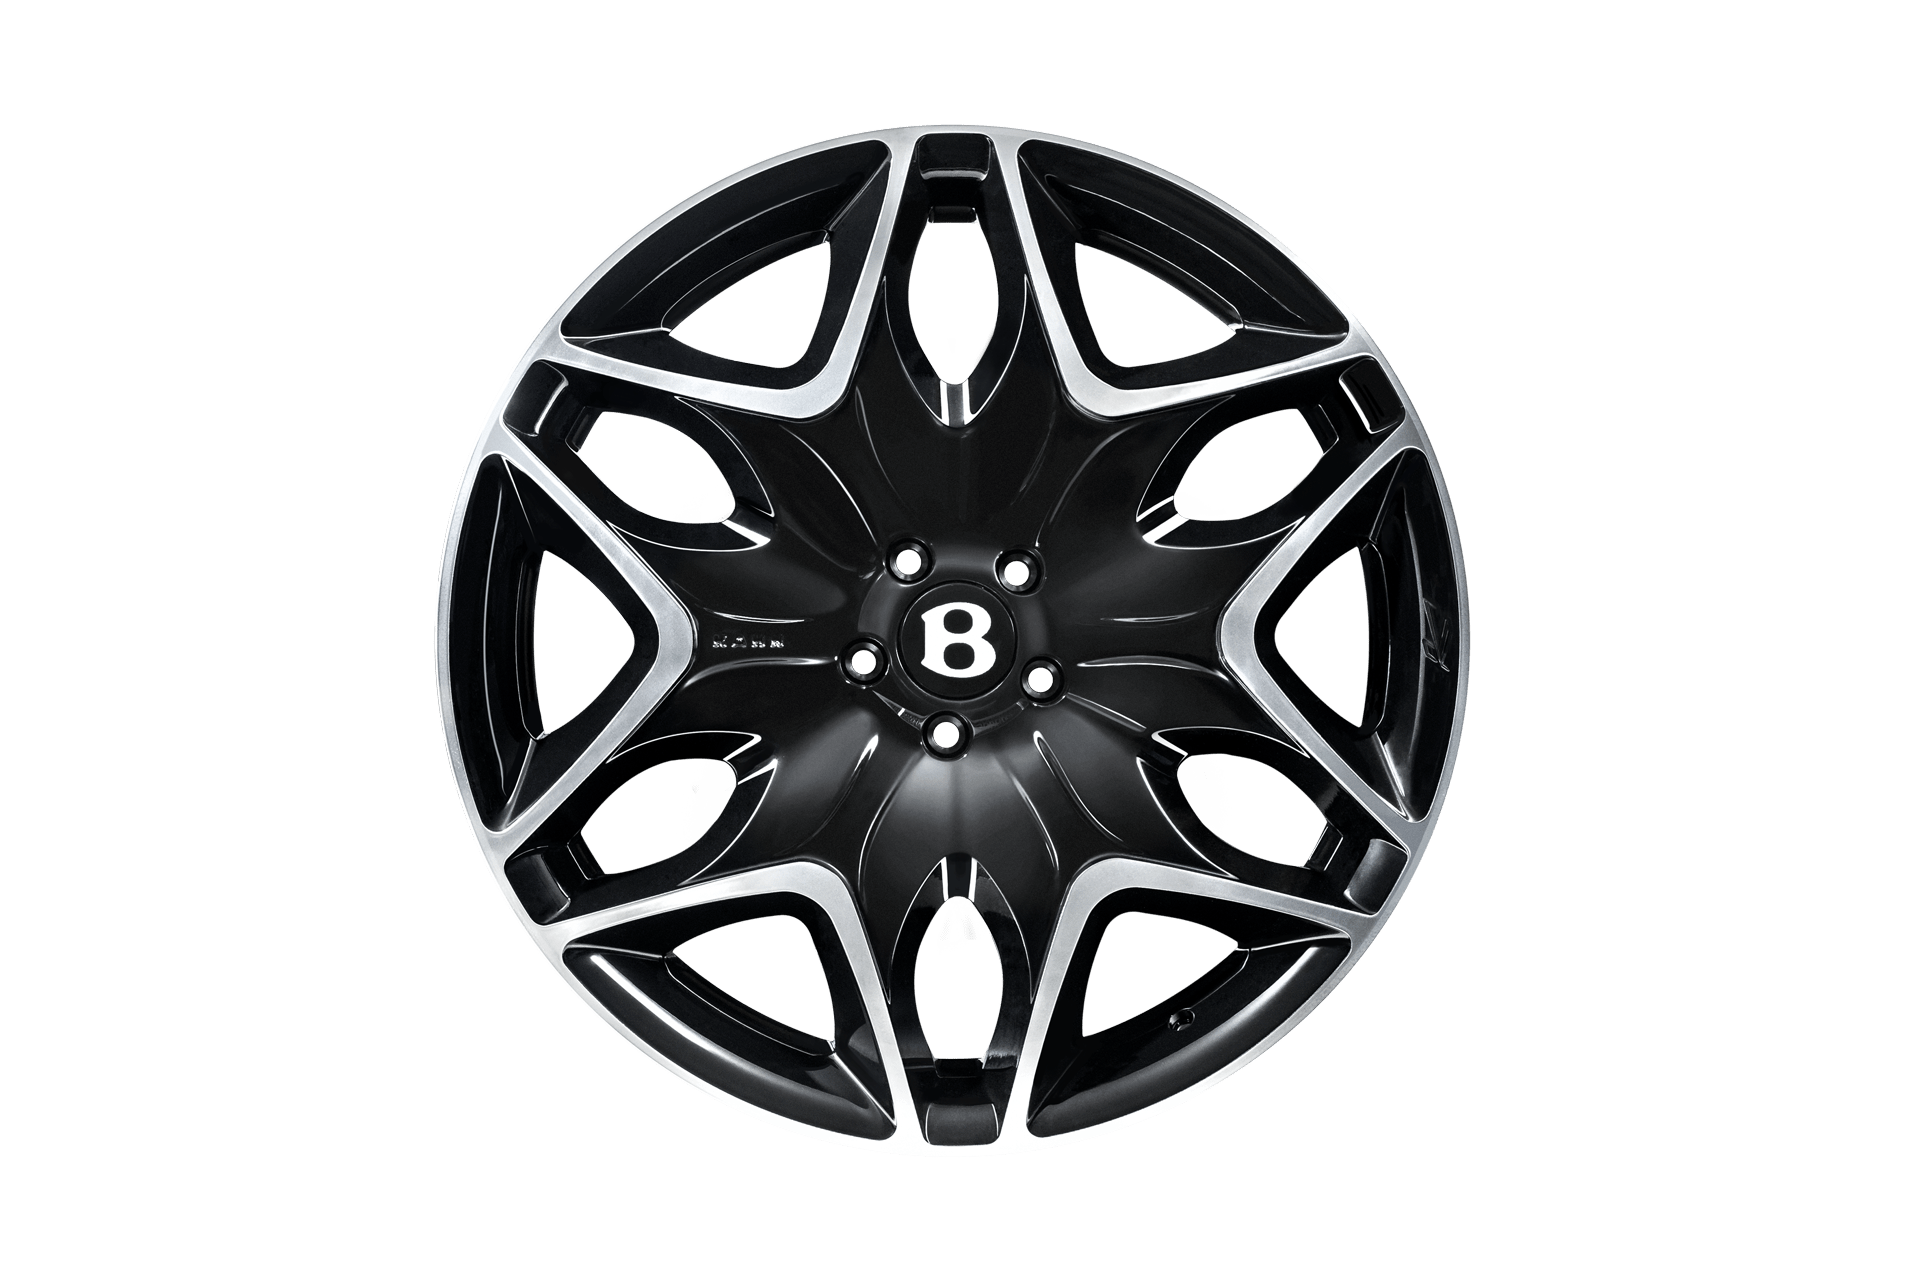 Bentley Mulsanne (2016-Present) Split 6 Light Alloy Wheels by Kahn - Image 3078